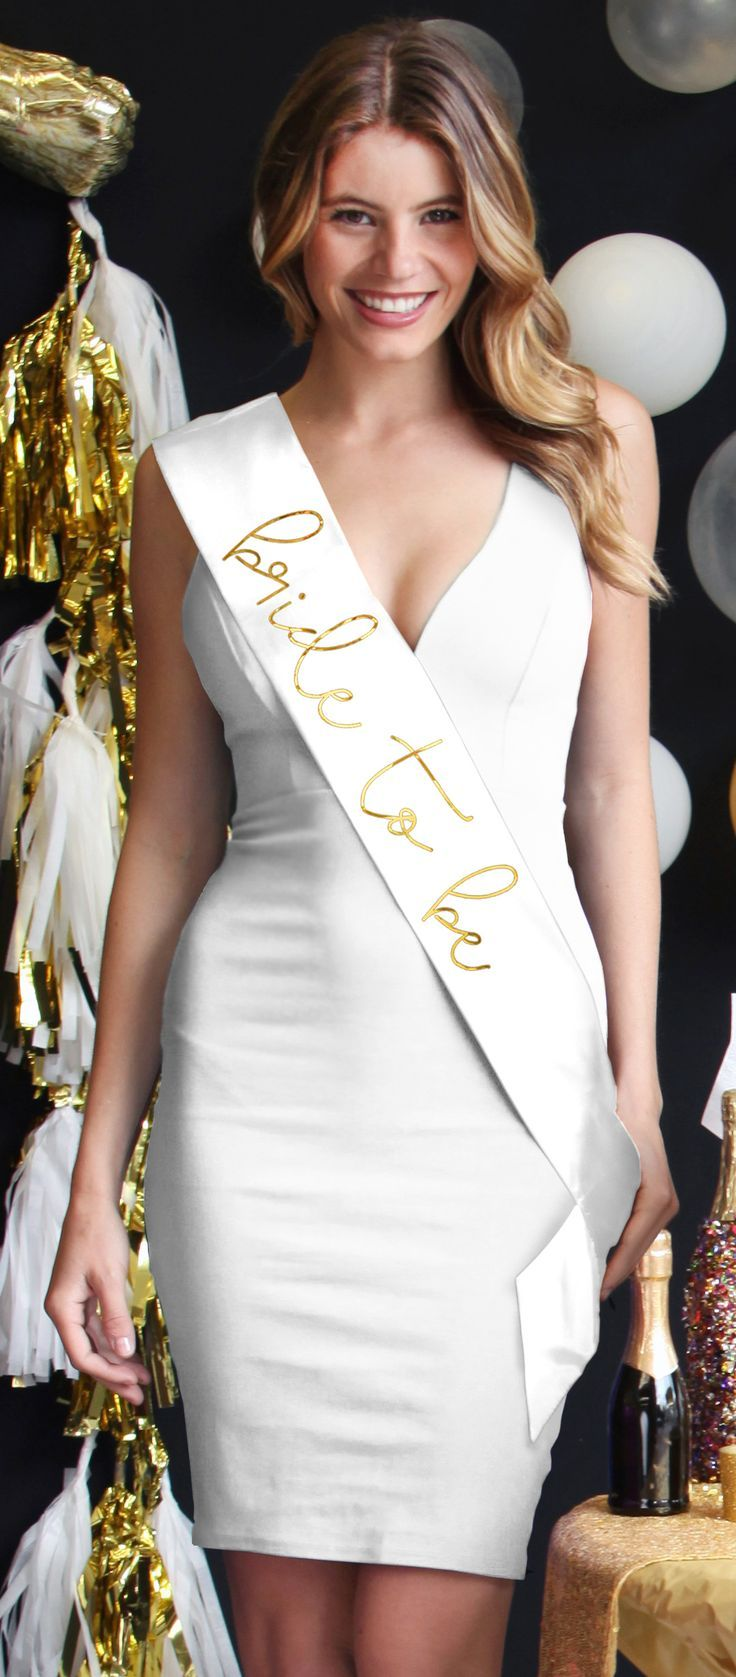 This all white look with a luxe white satin Bridal sash with a metallic gold Bride to be graphic is absolutely stunning!  Available exclusively at The House of Bachelorette.